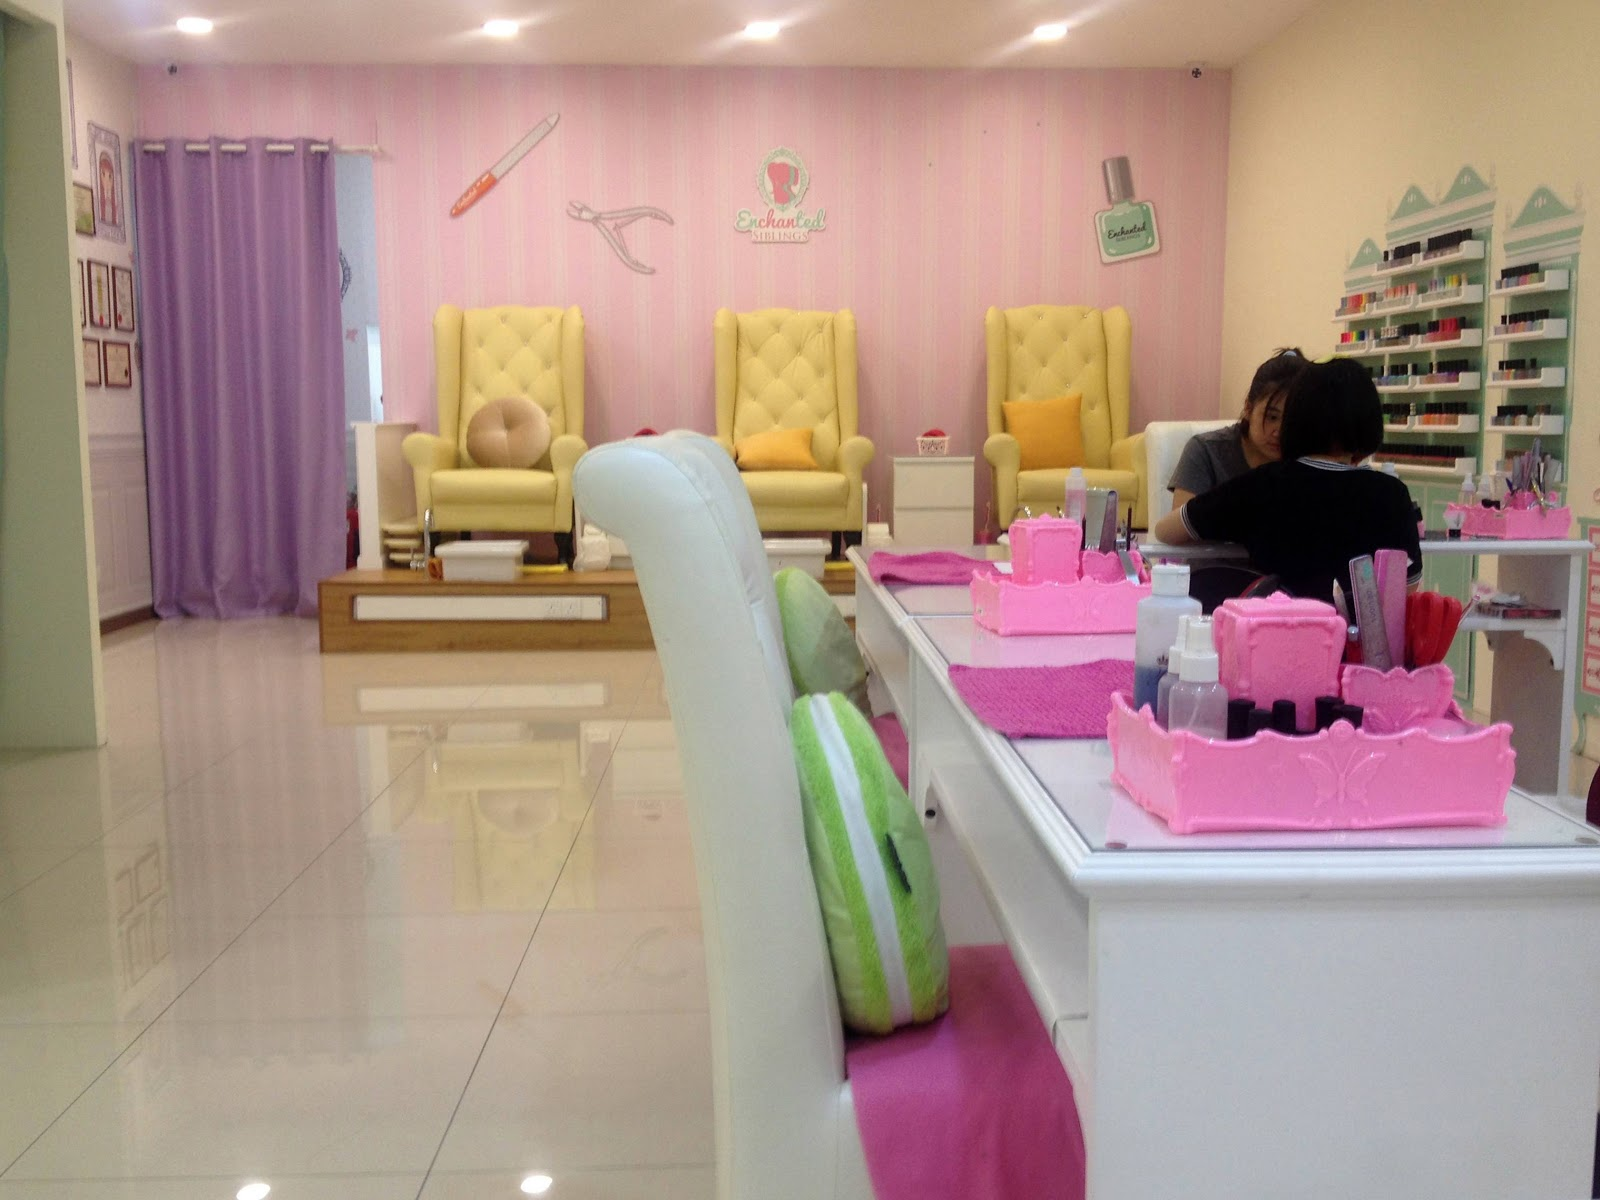 Joilynn first manicure experience enchanted siblings for 4 sisters nail salon hours